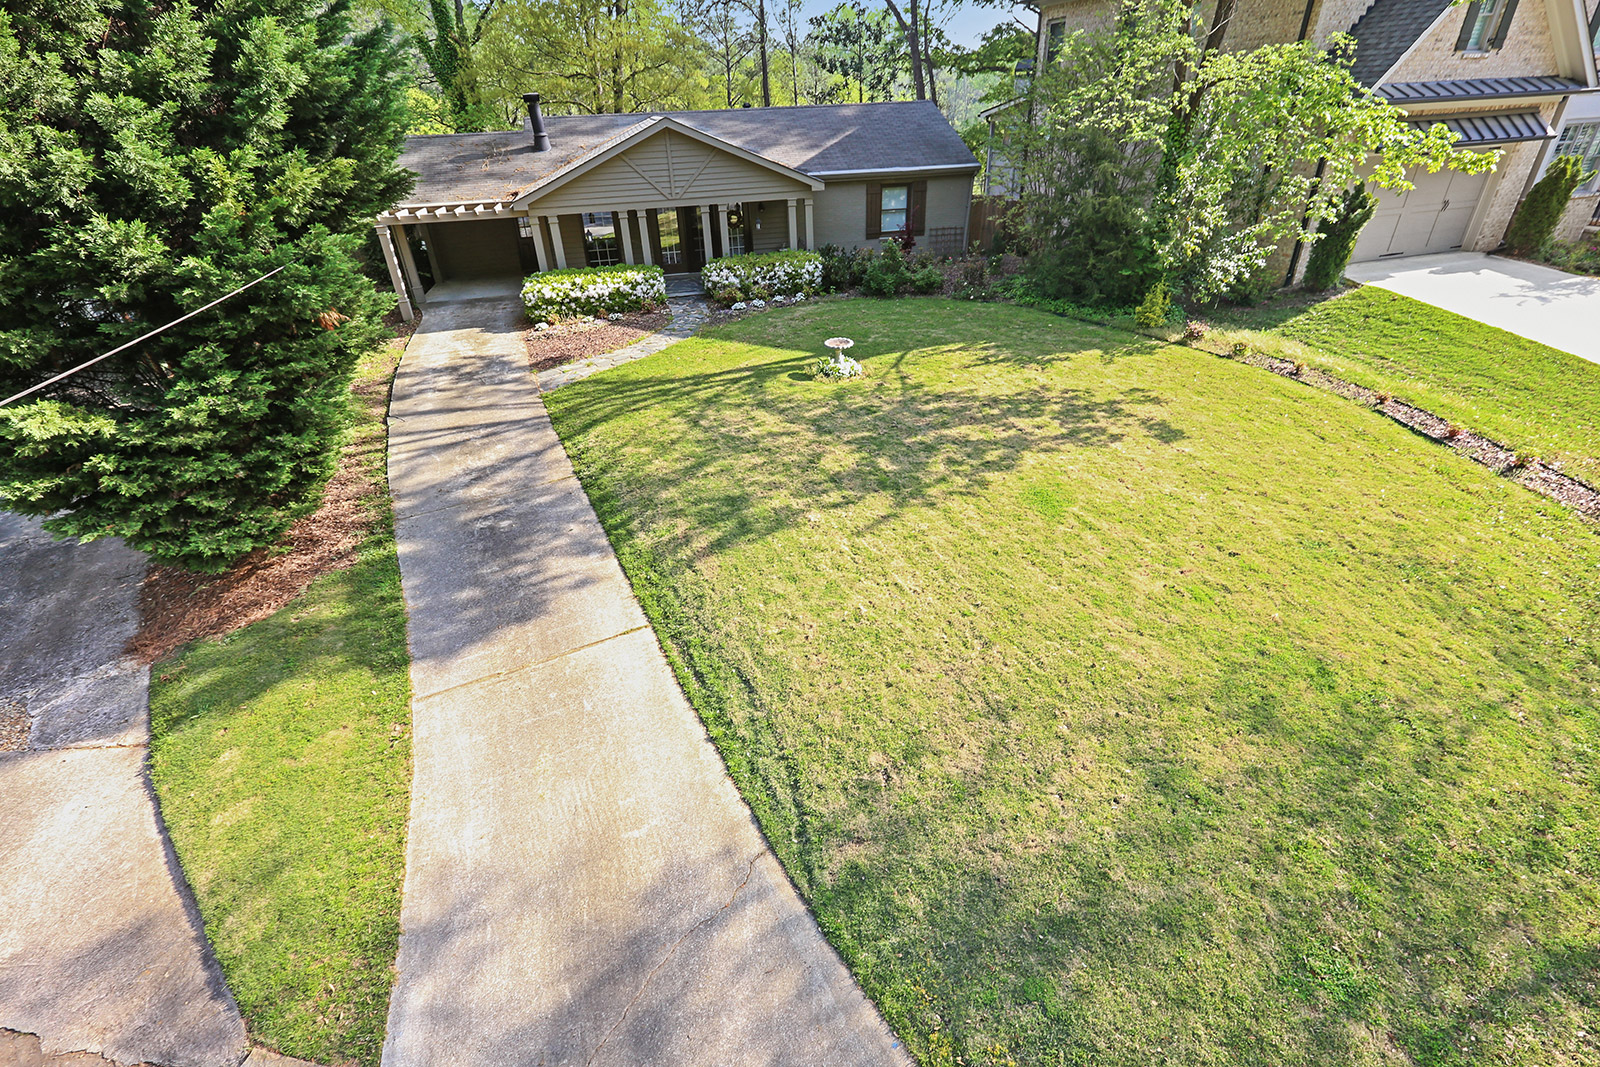 Single Family Home for Sale at Adorable Fully Renovated 1955 Traditional Home 1781 Warren Ct Atlanta, Georgia 30318 United States